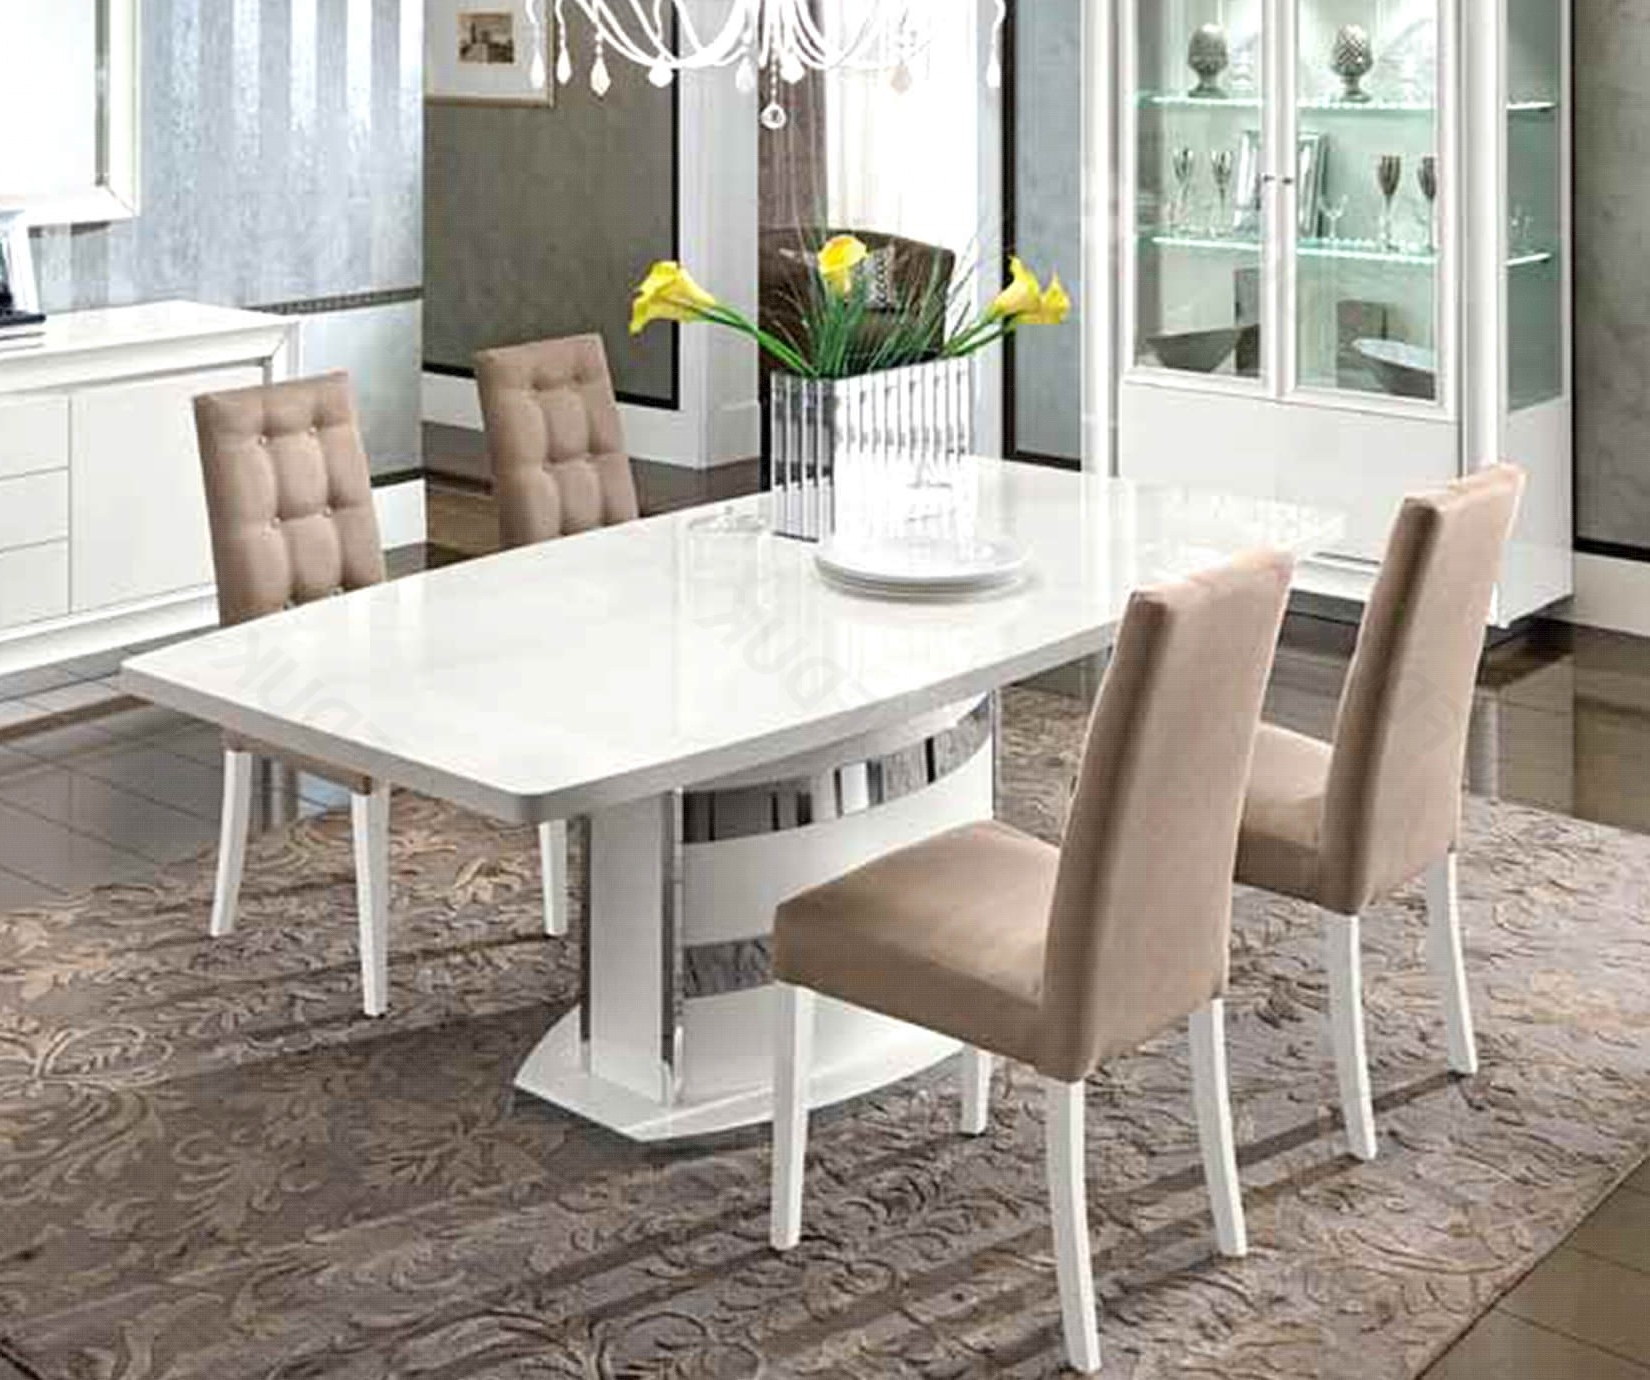 The 26 New White High Gloss Extending Dining Table – Welovedandelion Intended For Most Current Extending Gloss Dining Tables (View 20 of 25)